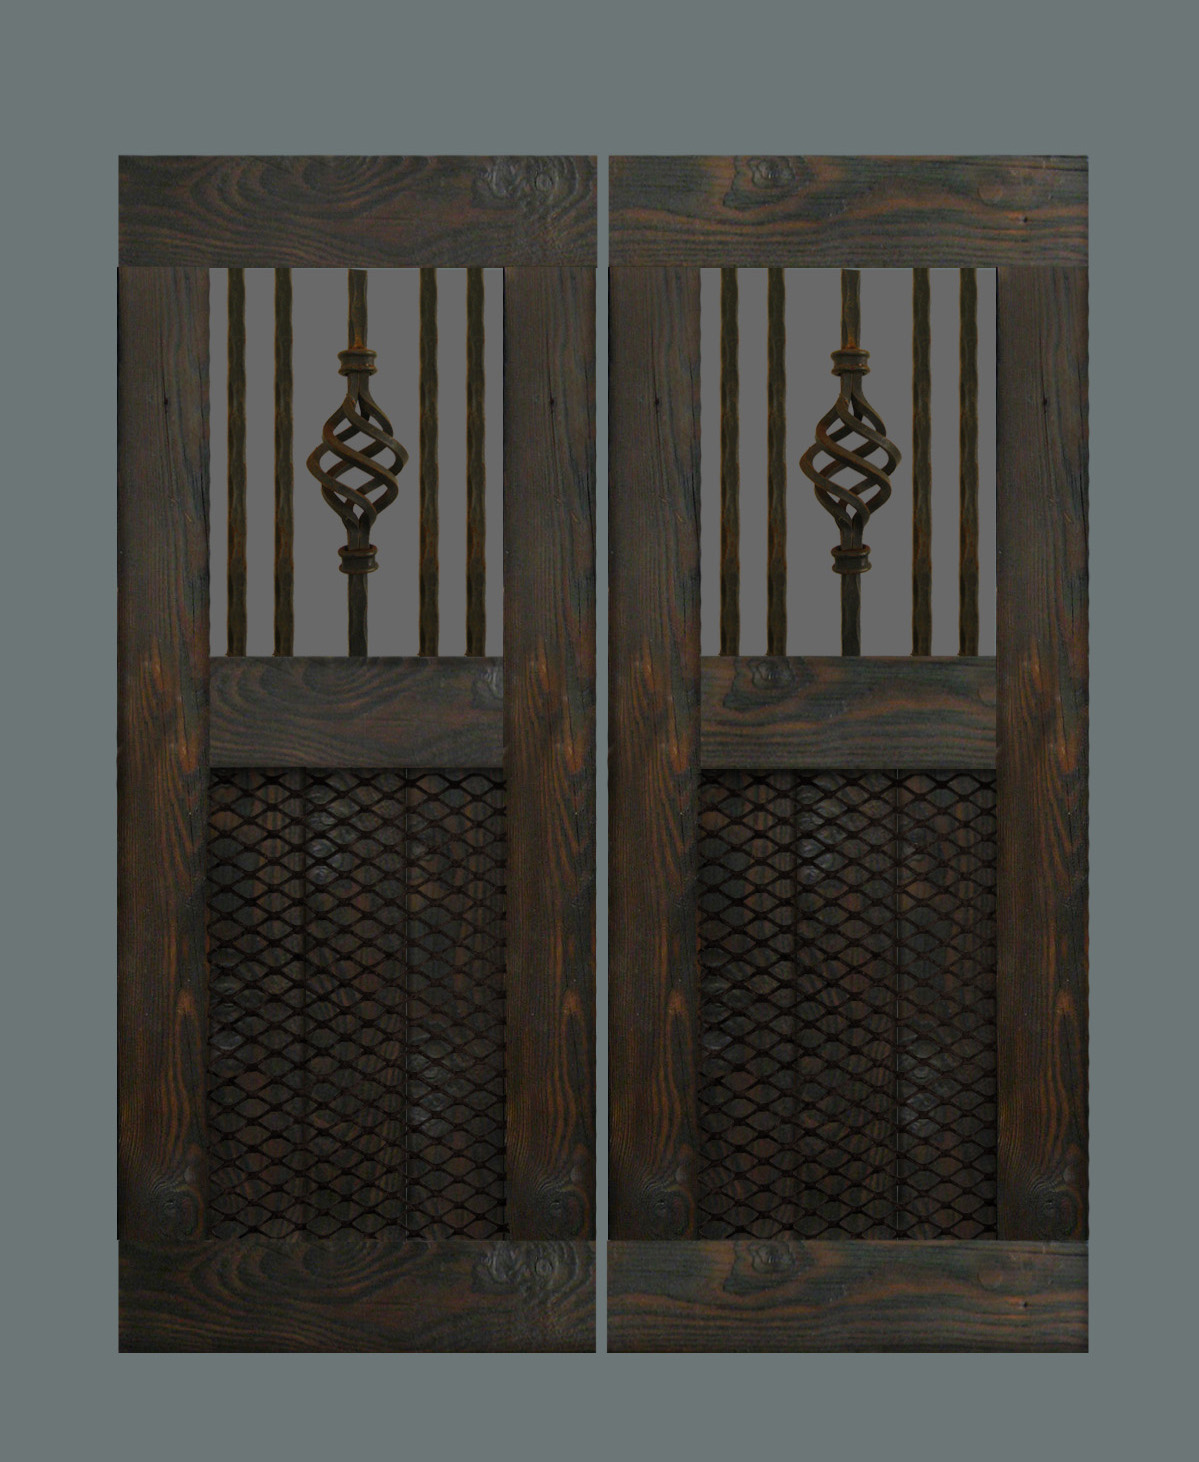 Handcrafted swinging saloon doors with reclaimed wrought iron and industrial mesh. & Man Cave Industries: Handcrafted Industrial Swinging Saloon Doors